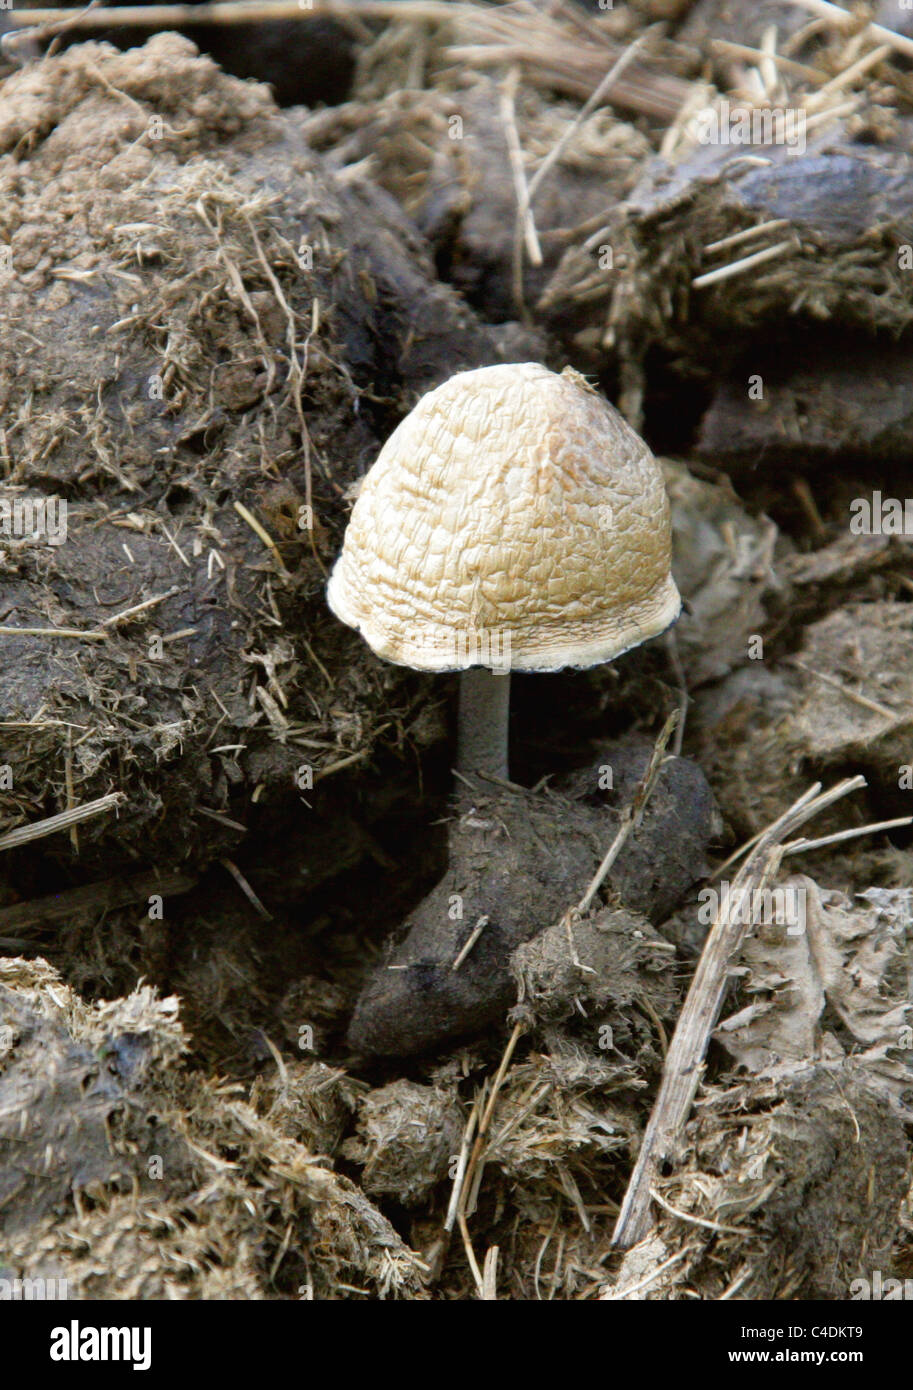 Snowy Inkcap, Coprinopsis nivea, Psathyrellaceae. Growing on Old Cow Dung. Previously Coprinus niveus, Syn. Coprinus - Stock Image